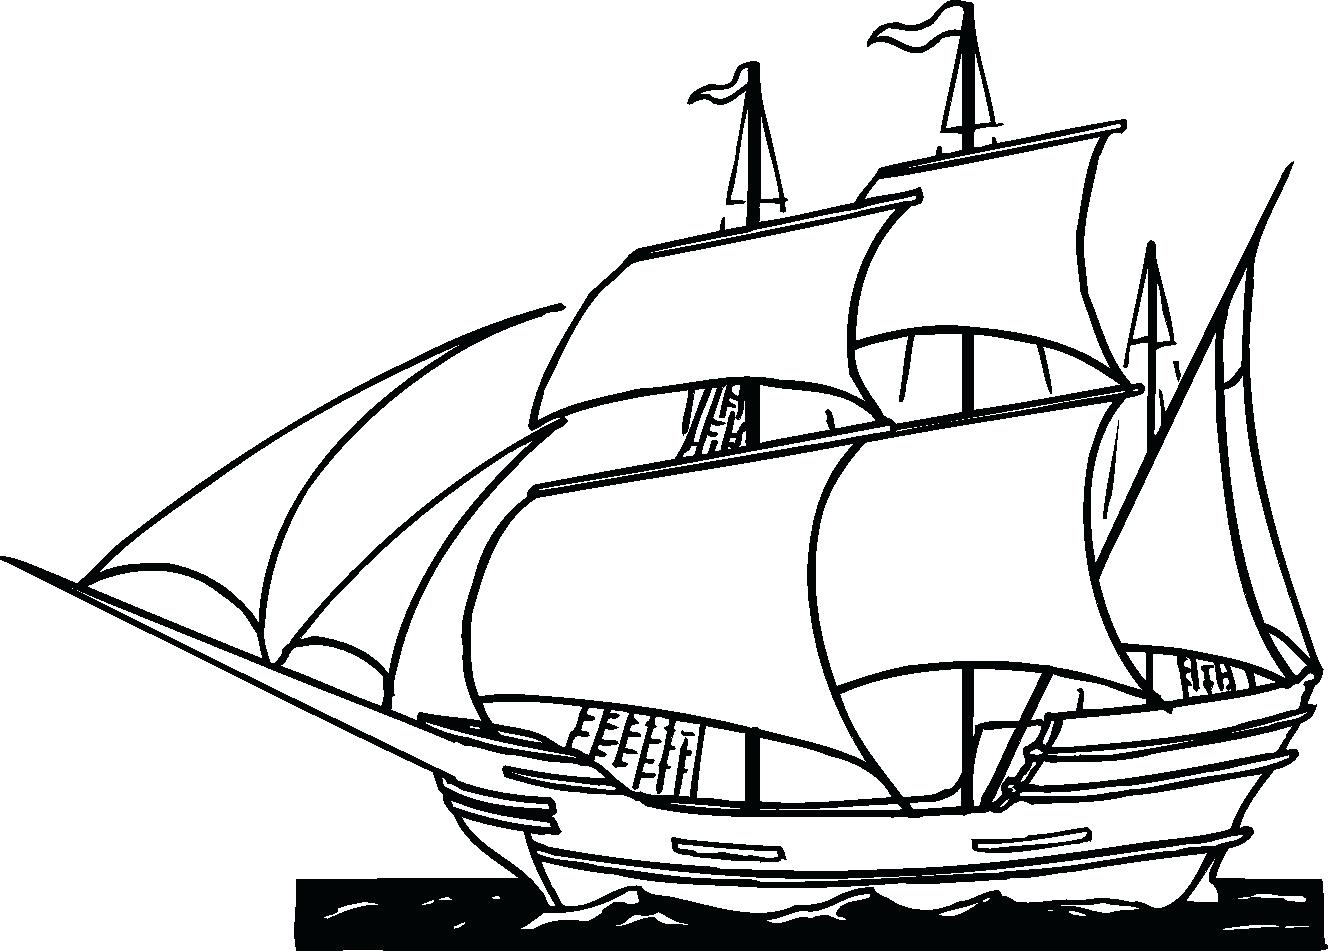 1328x951 Private Cruise Ship Coloring Pages For Adults Mandala Law News